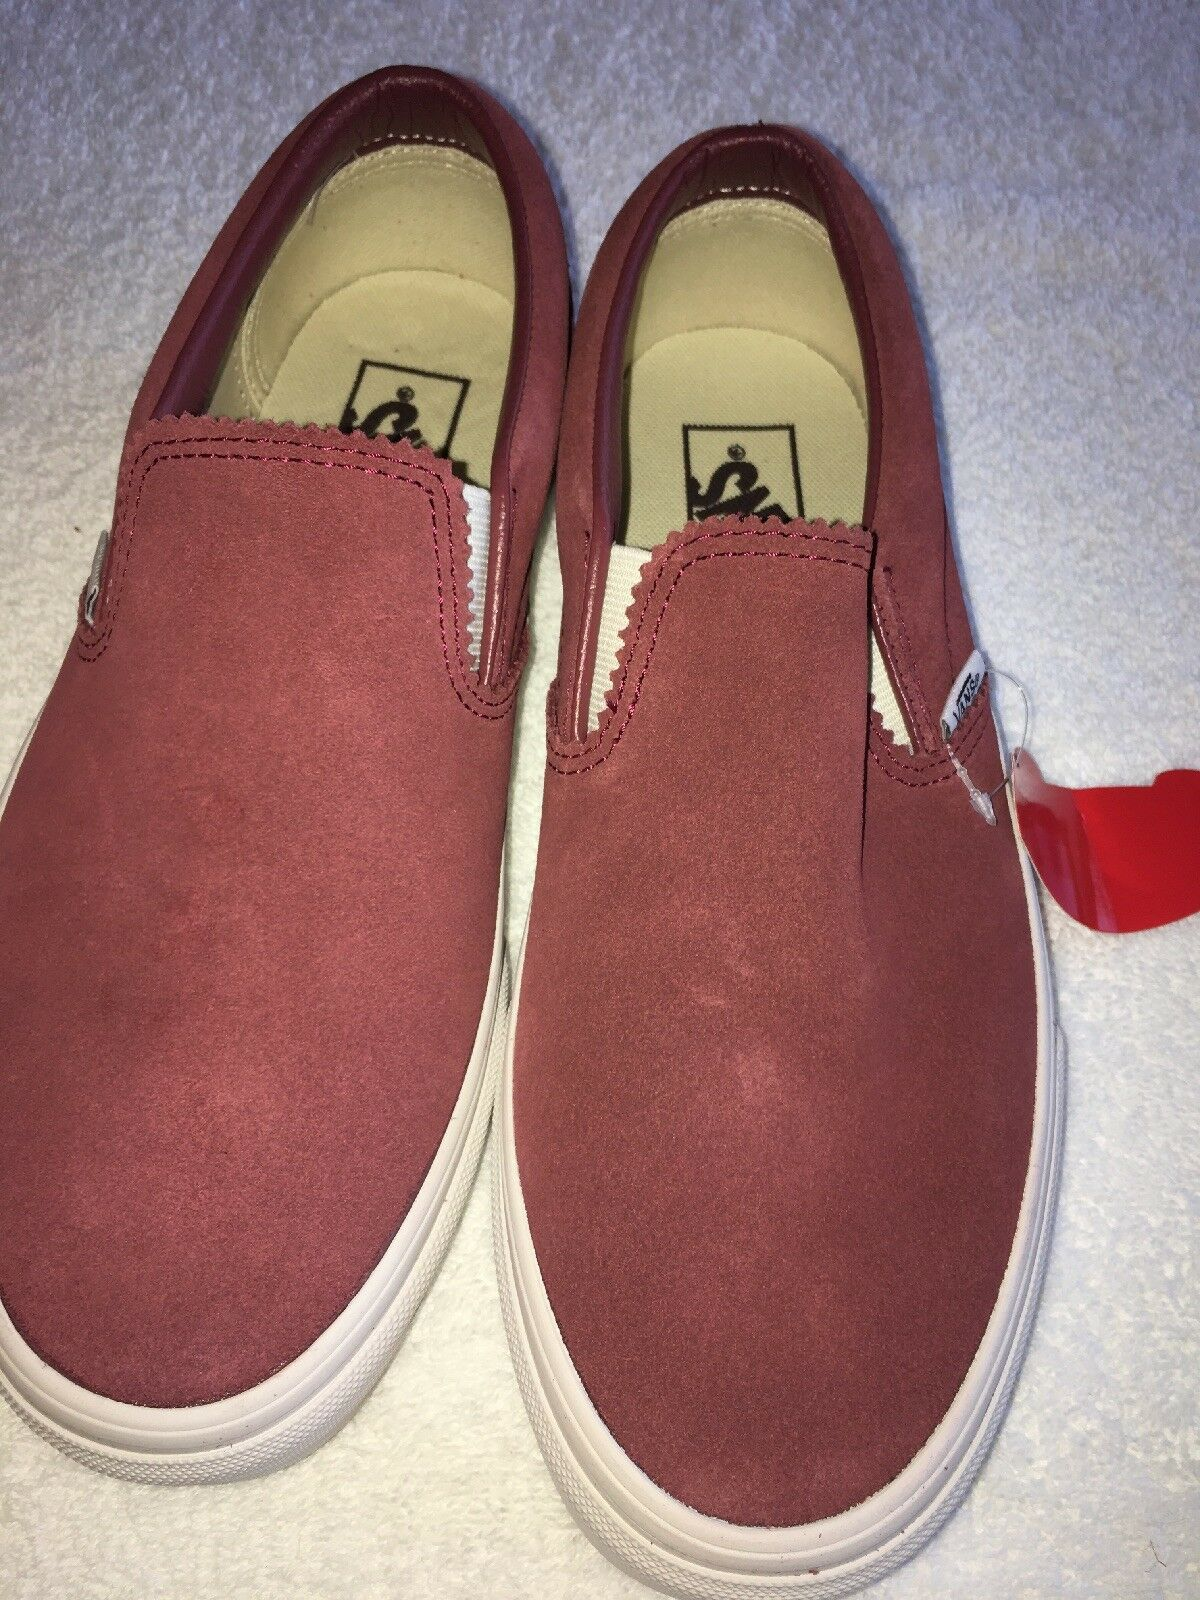 Vans Off The Wall Slip On Pink Red Suede Design Men's Size 6.5 Women's Size 8